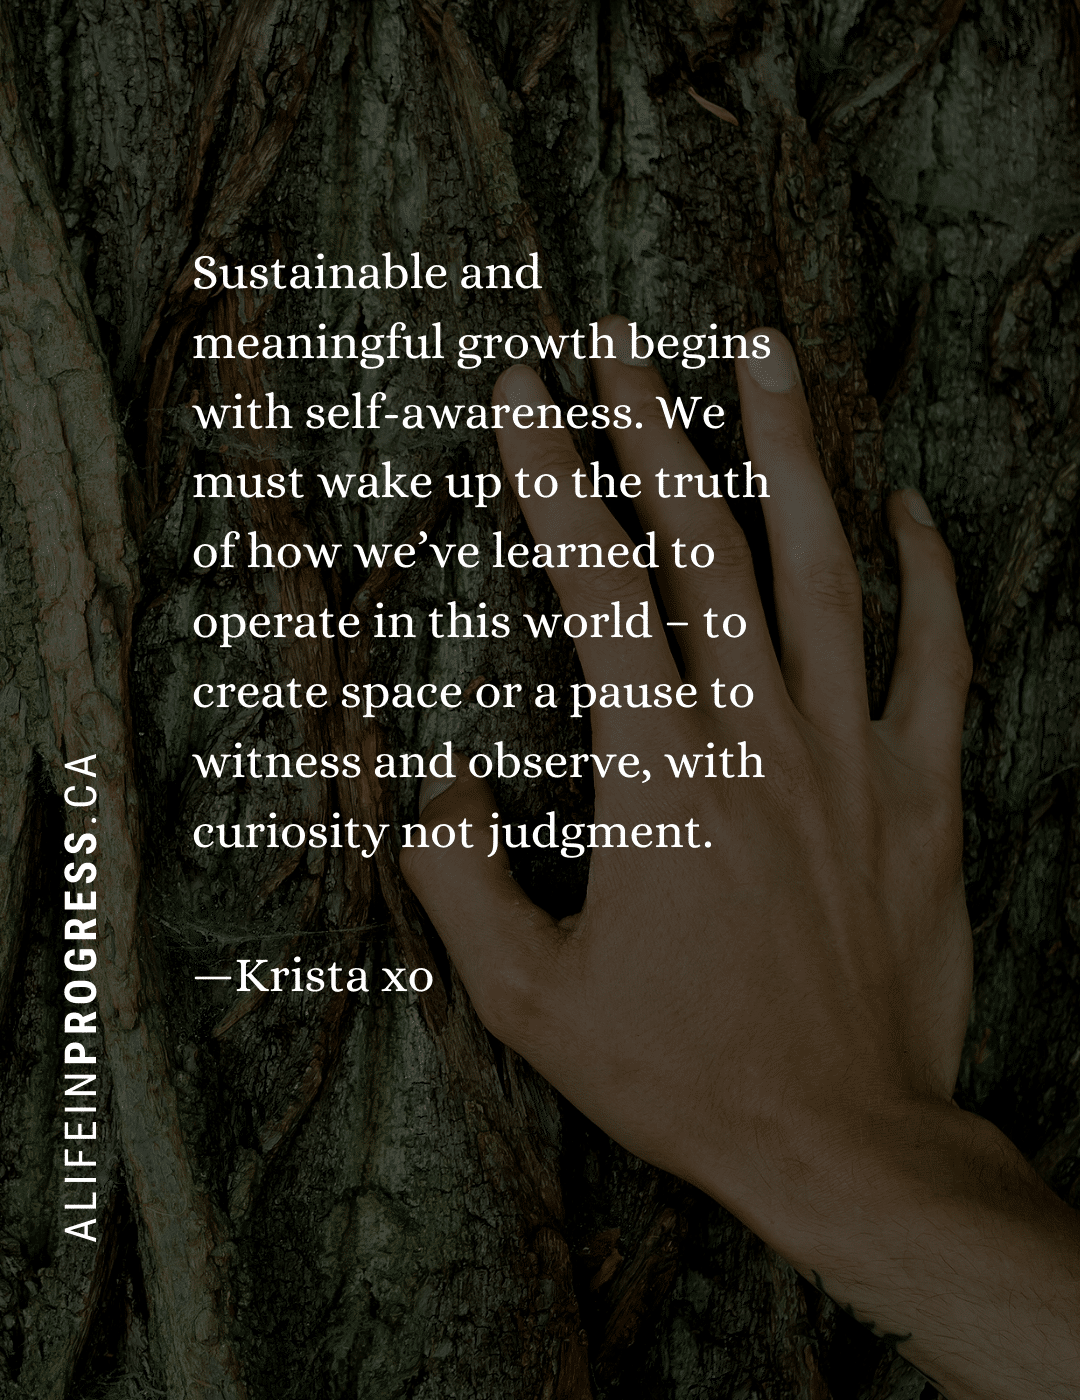 """A picture of a female hand touching the bark of a tree with the following quote, """"Sustainable and meaningful growth begins with self-awareness. We must wake up to the truth of how we've learned to operated in this world - to create space or a pause to witness and observe, with curiosity not judgment. -- Krista xo A Life in Progress dot CA"""